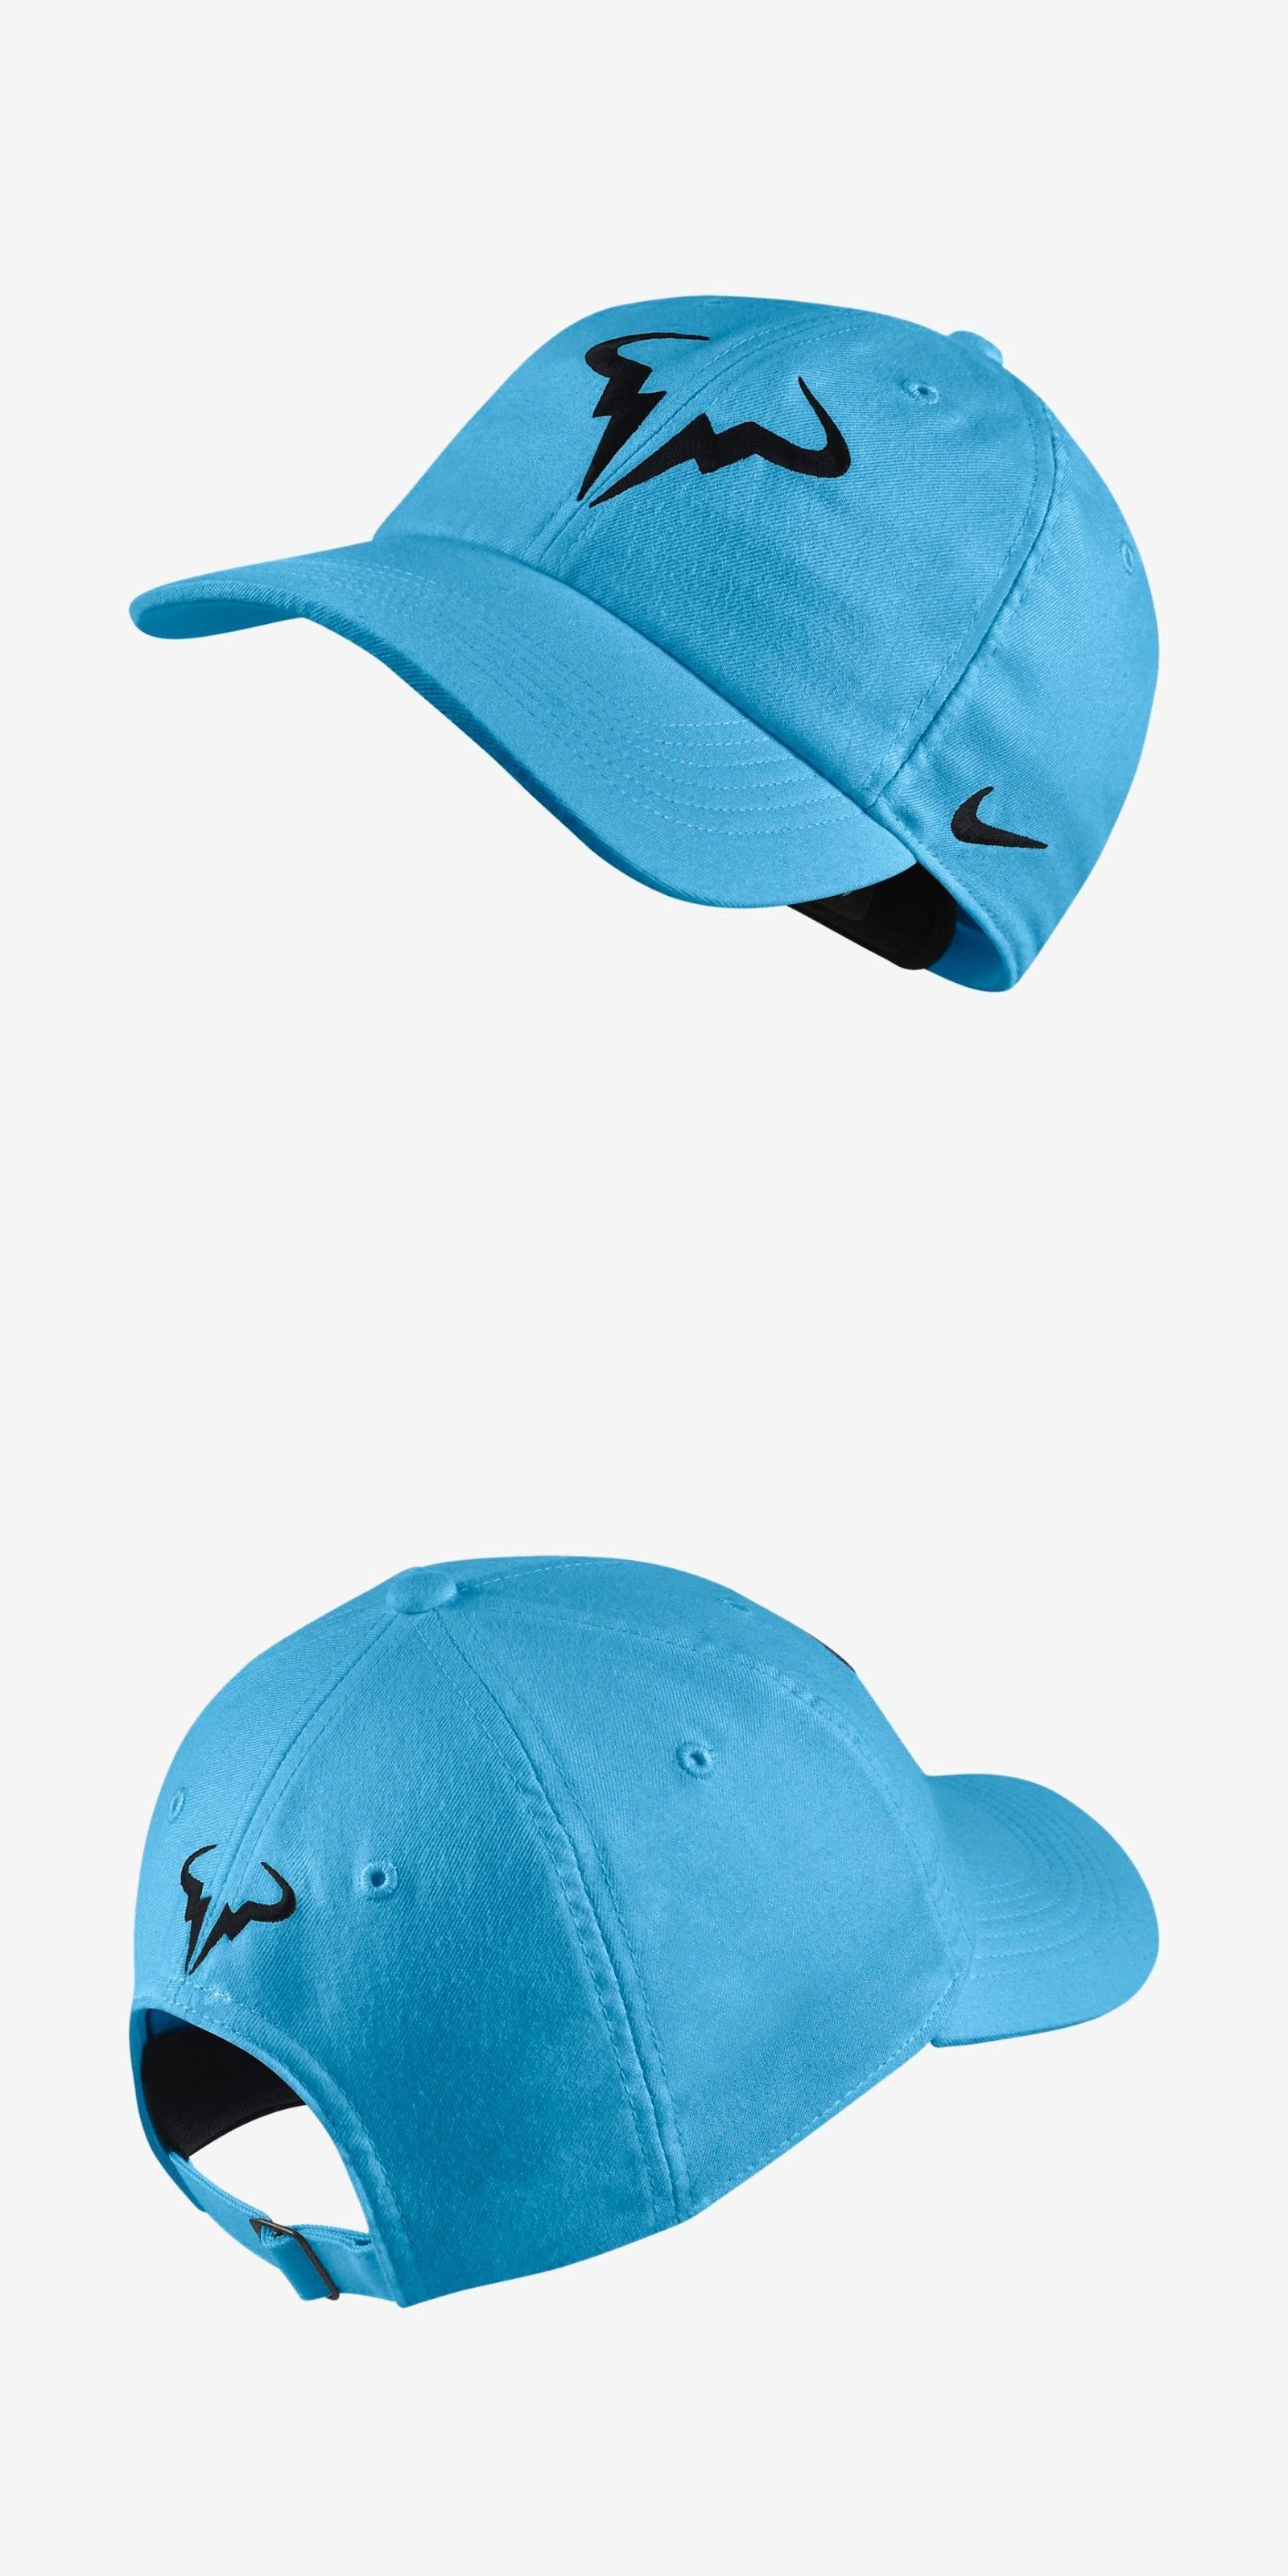 dc77dc9afda Clothing 70898  New Nike Nikecourt Aerobill H86 Rafael Nadal Tennis Hat  Teal Blue French Open -  BUY IT NOW ONLY   29.97 on eBay!